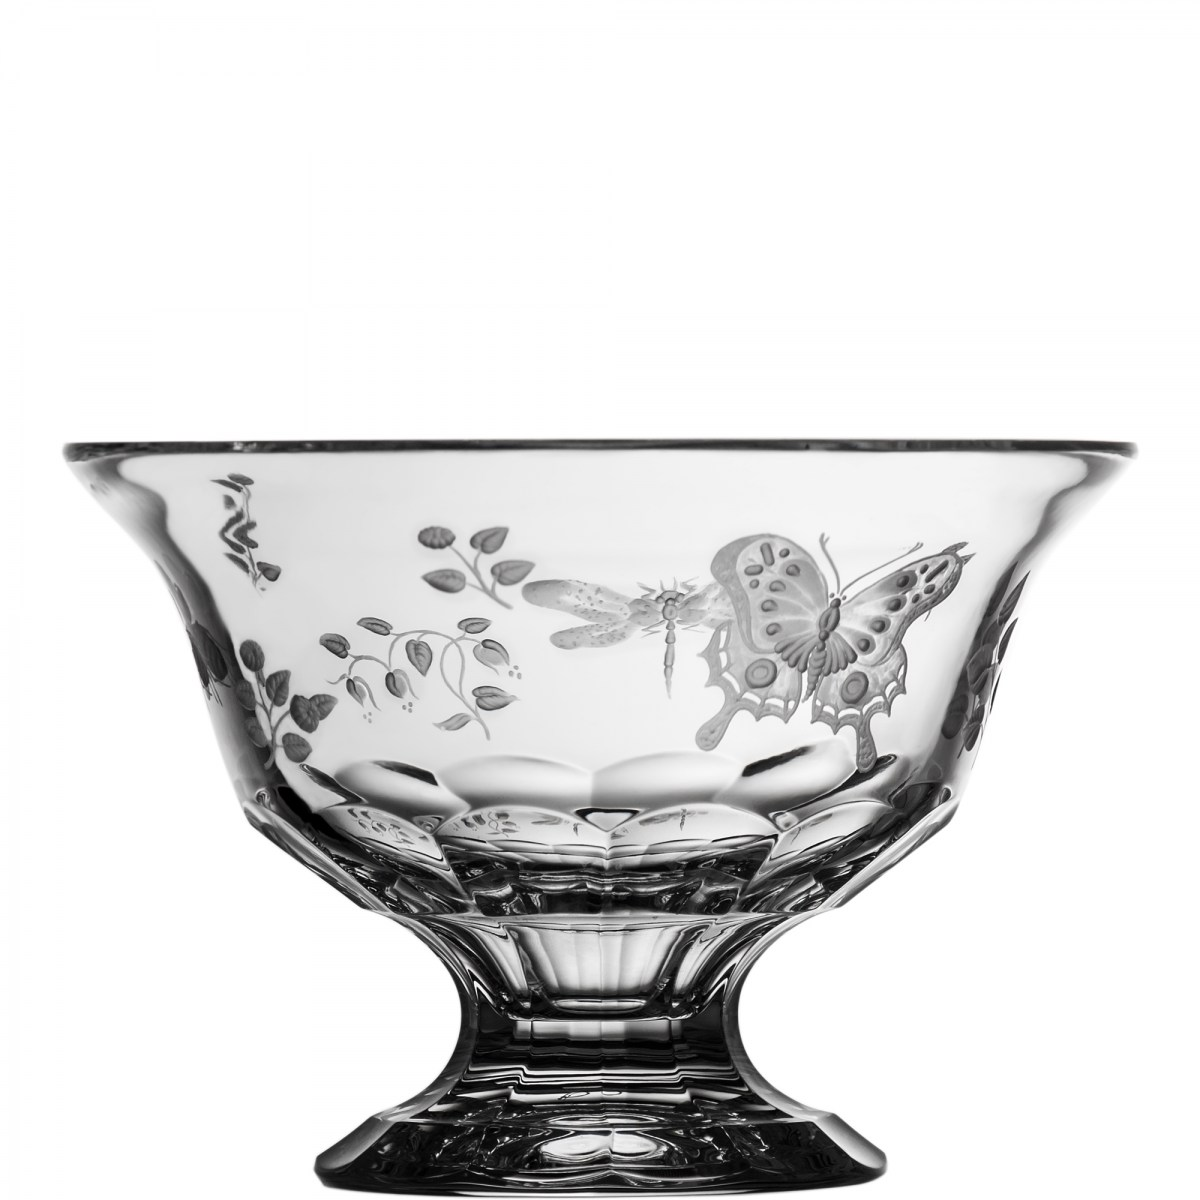 Springtime Clear Footed Bowl 8' - $ 363 / € 318